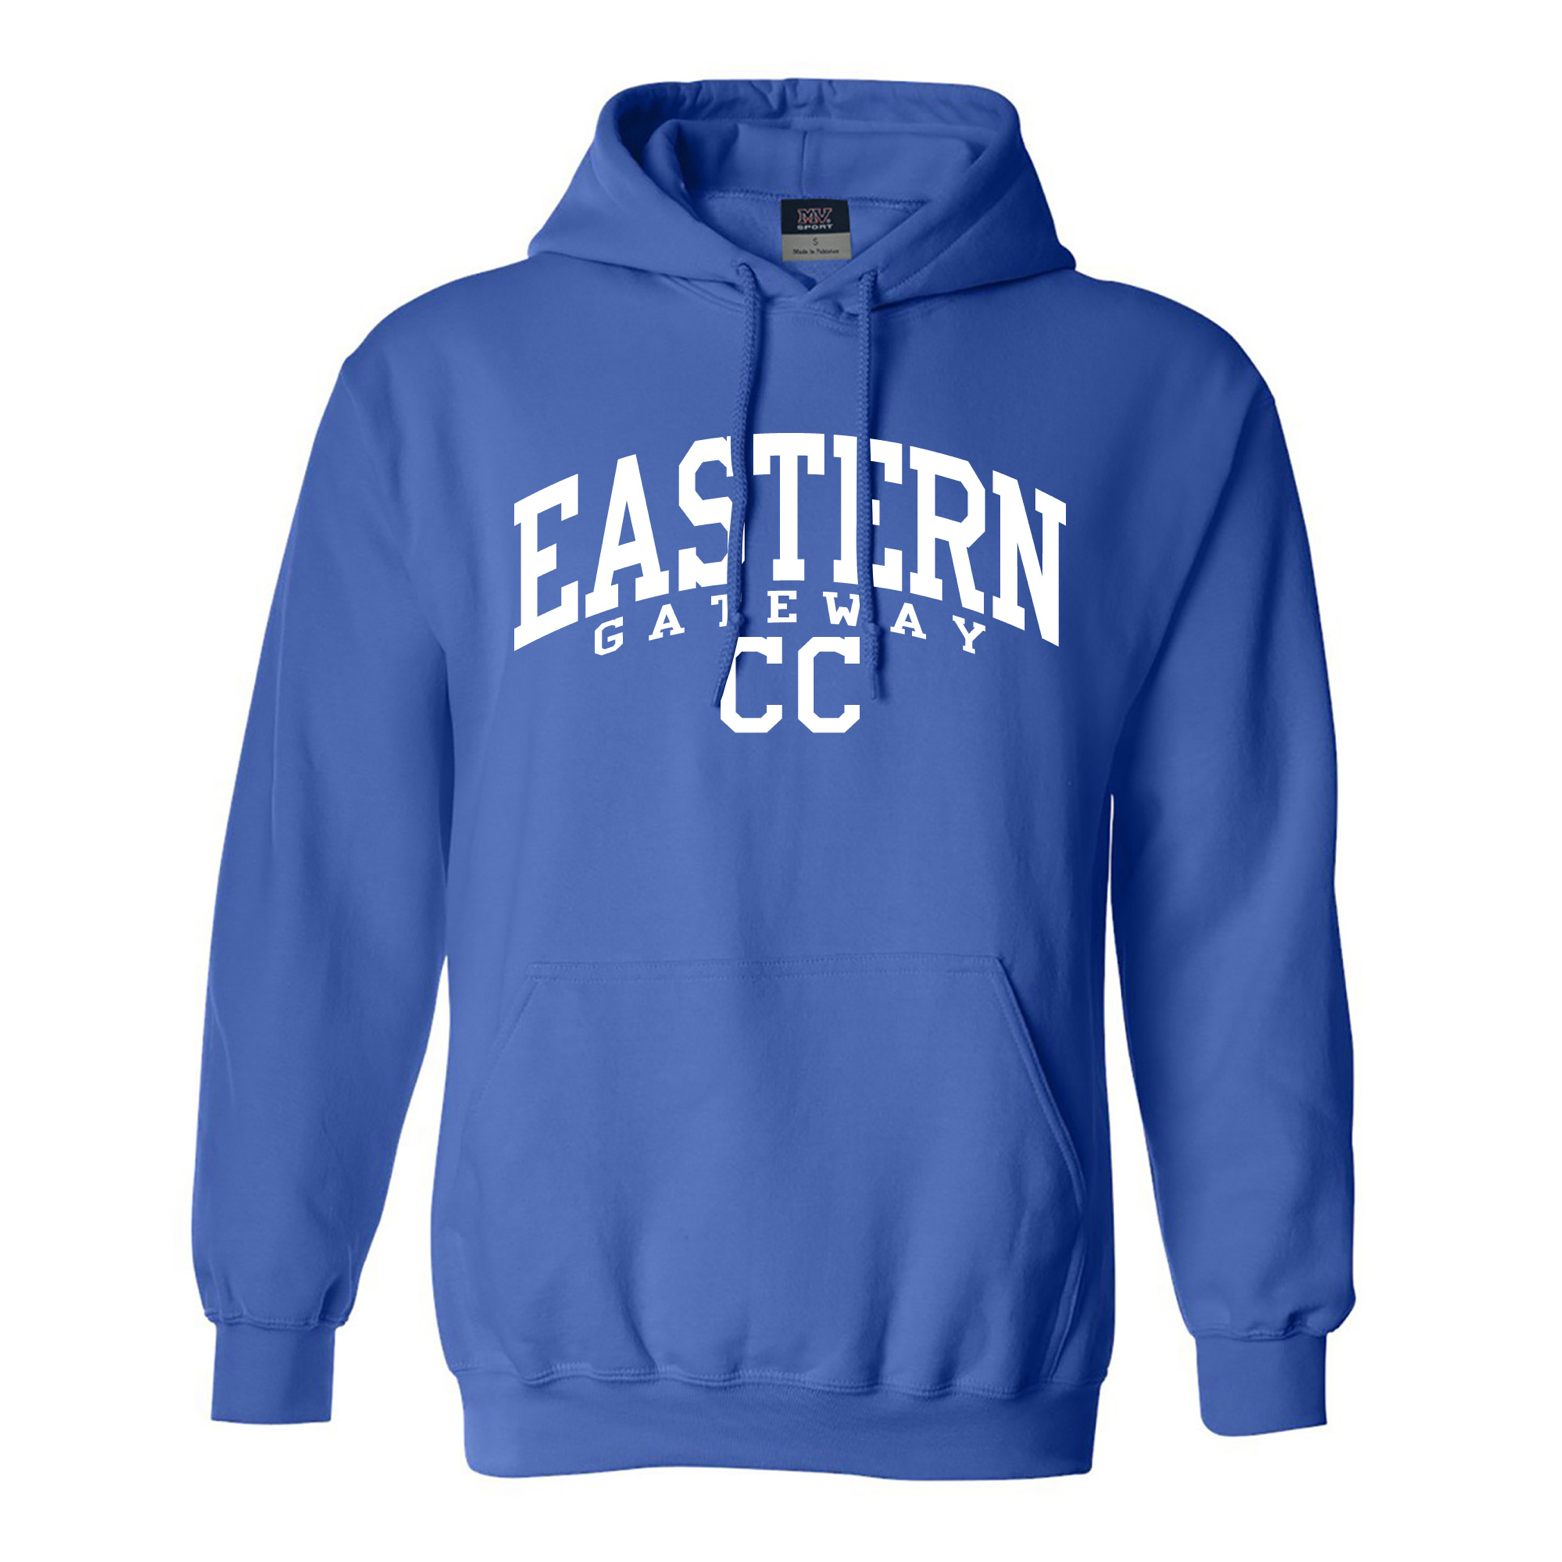 Alternative Image for the Hooded Sweatshirt EASTERN GATEWAY CC in white product